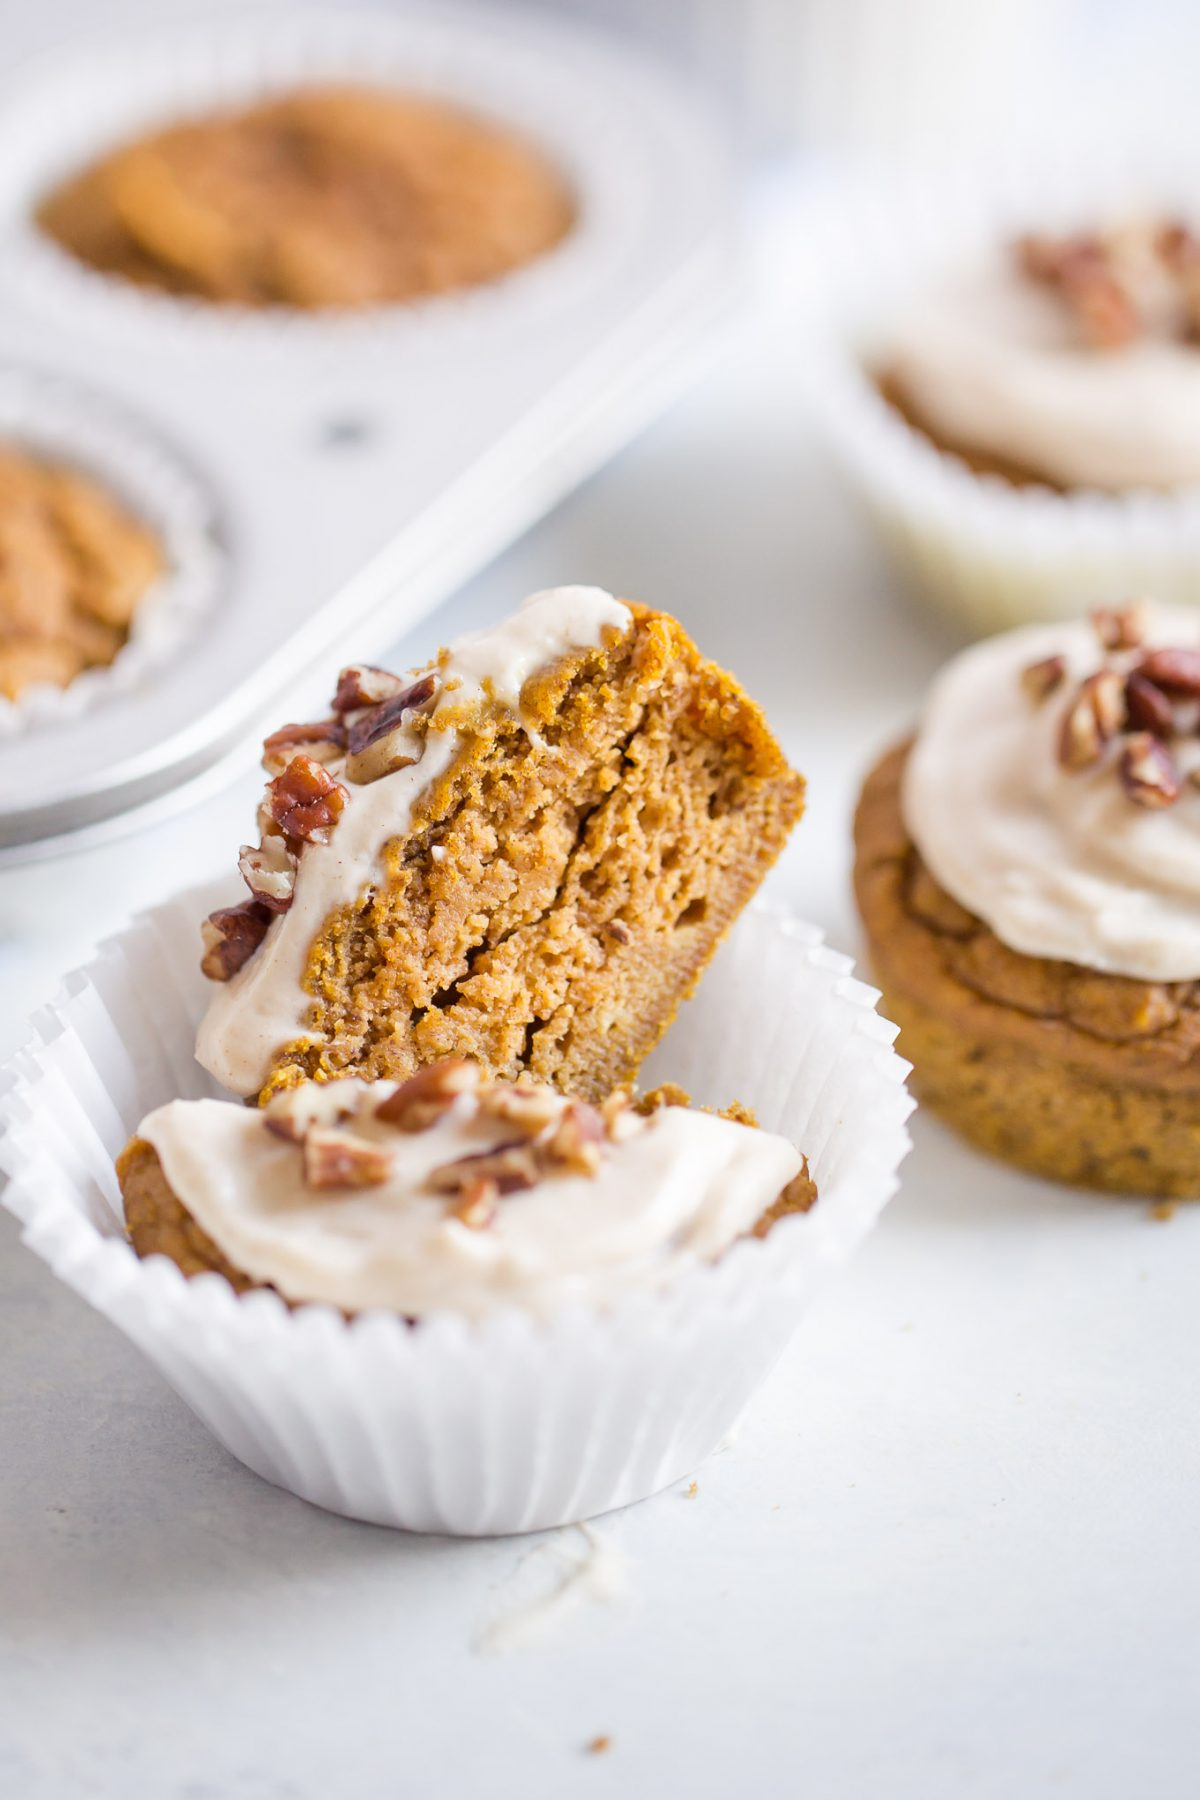 Naturally Sweetened Pumpkin Cupcakes with Maple Cream Cheese Frosting - made with no refined sugar! These are naturally sweetened with medjool date paste!